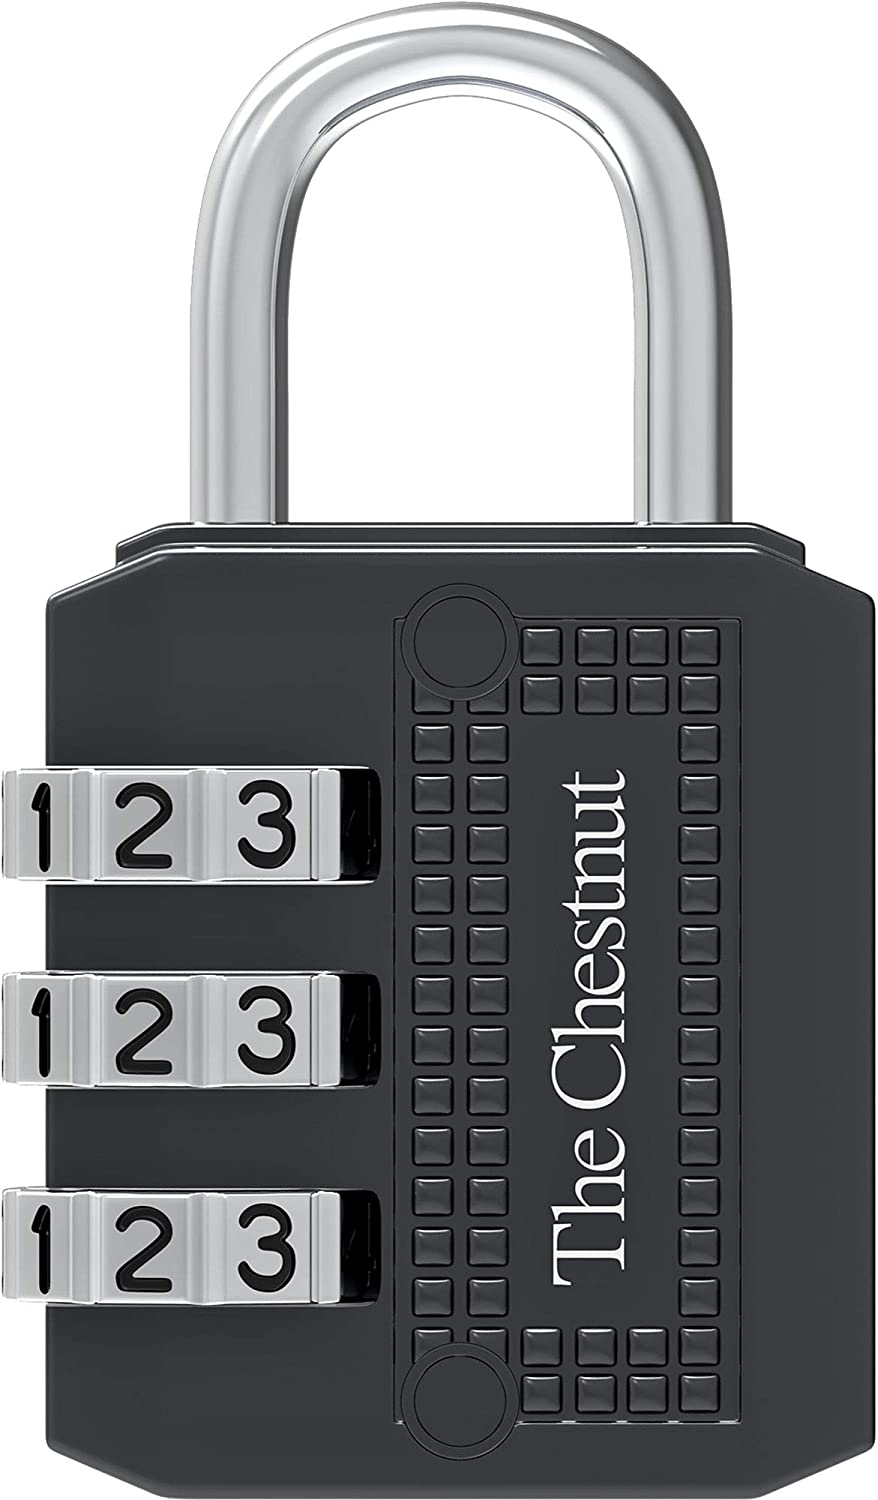 Padlock with 3 Digit Combination - Outdoor Weatherproof Combination Lock - Keyless Resettable Combo - for Luggage, Fence, Travel, Gate, Door, School, Gym, Sports, Toolbox, Case, Employee Lockers, Hasp